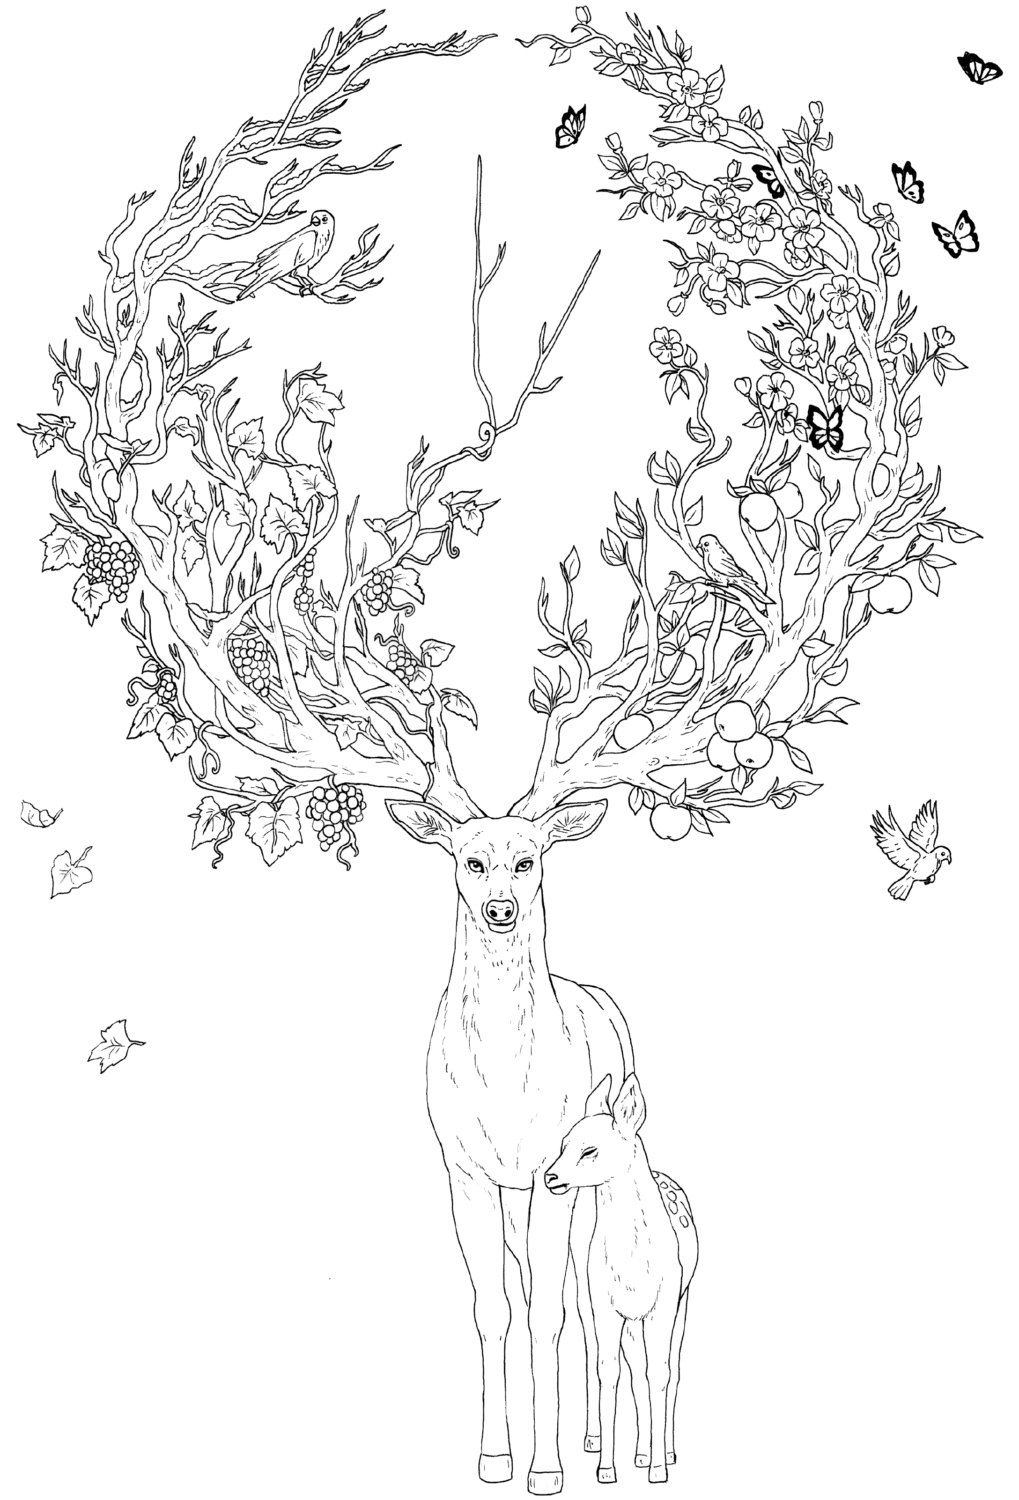 Limited Edition Coloring Book Crazy Animals By Animal Coloring Books Coloring Books Coloring Pages